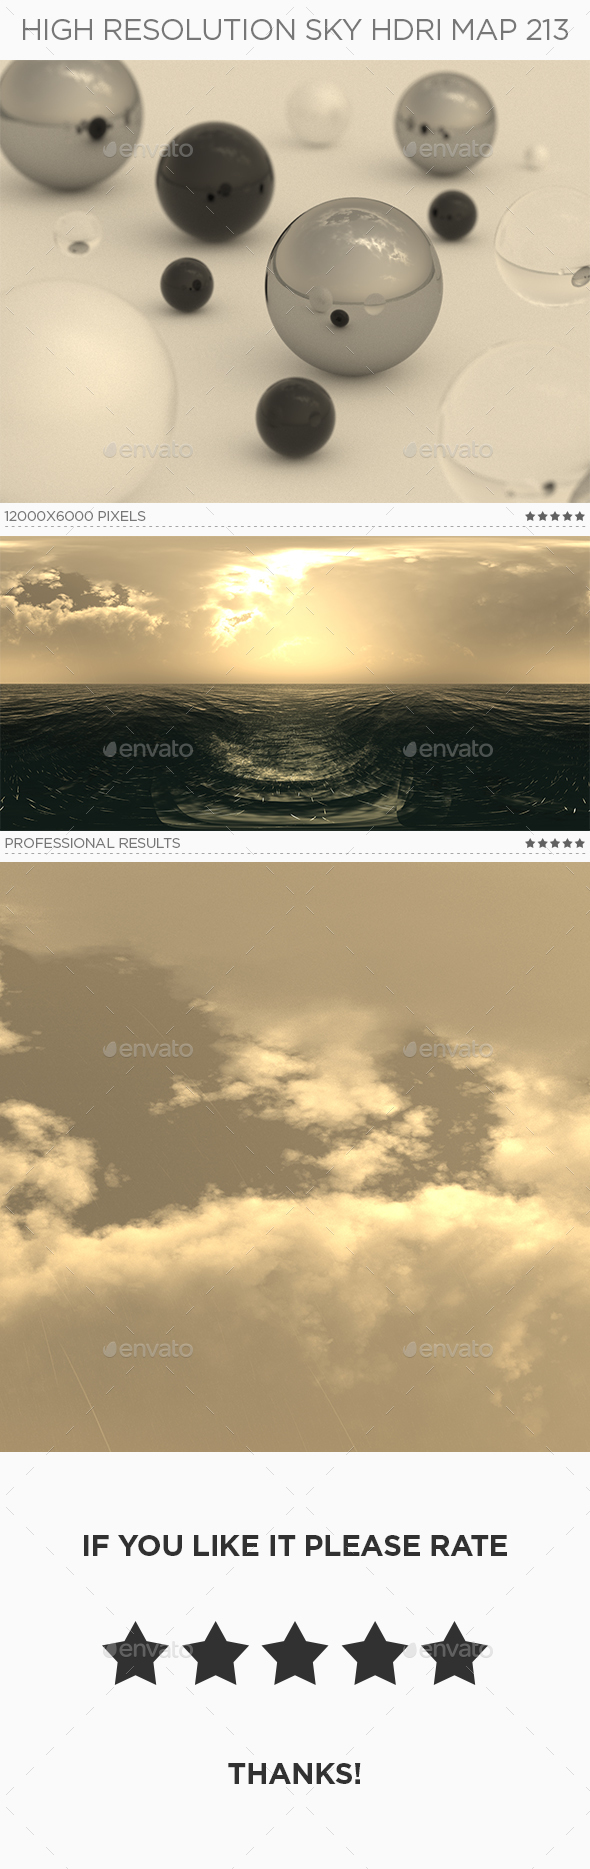 High Resolution Sky HDRi Map 213 - 3DOcean Item for Sale